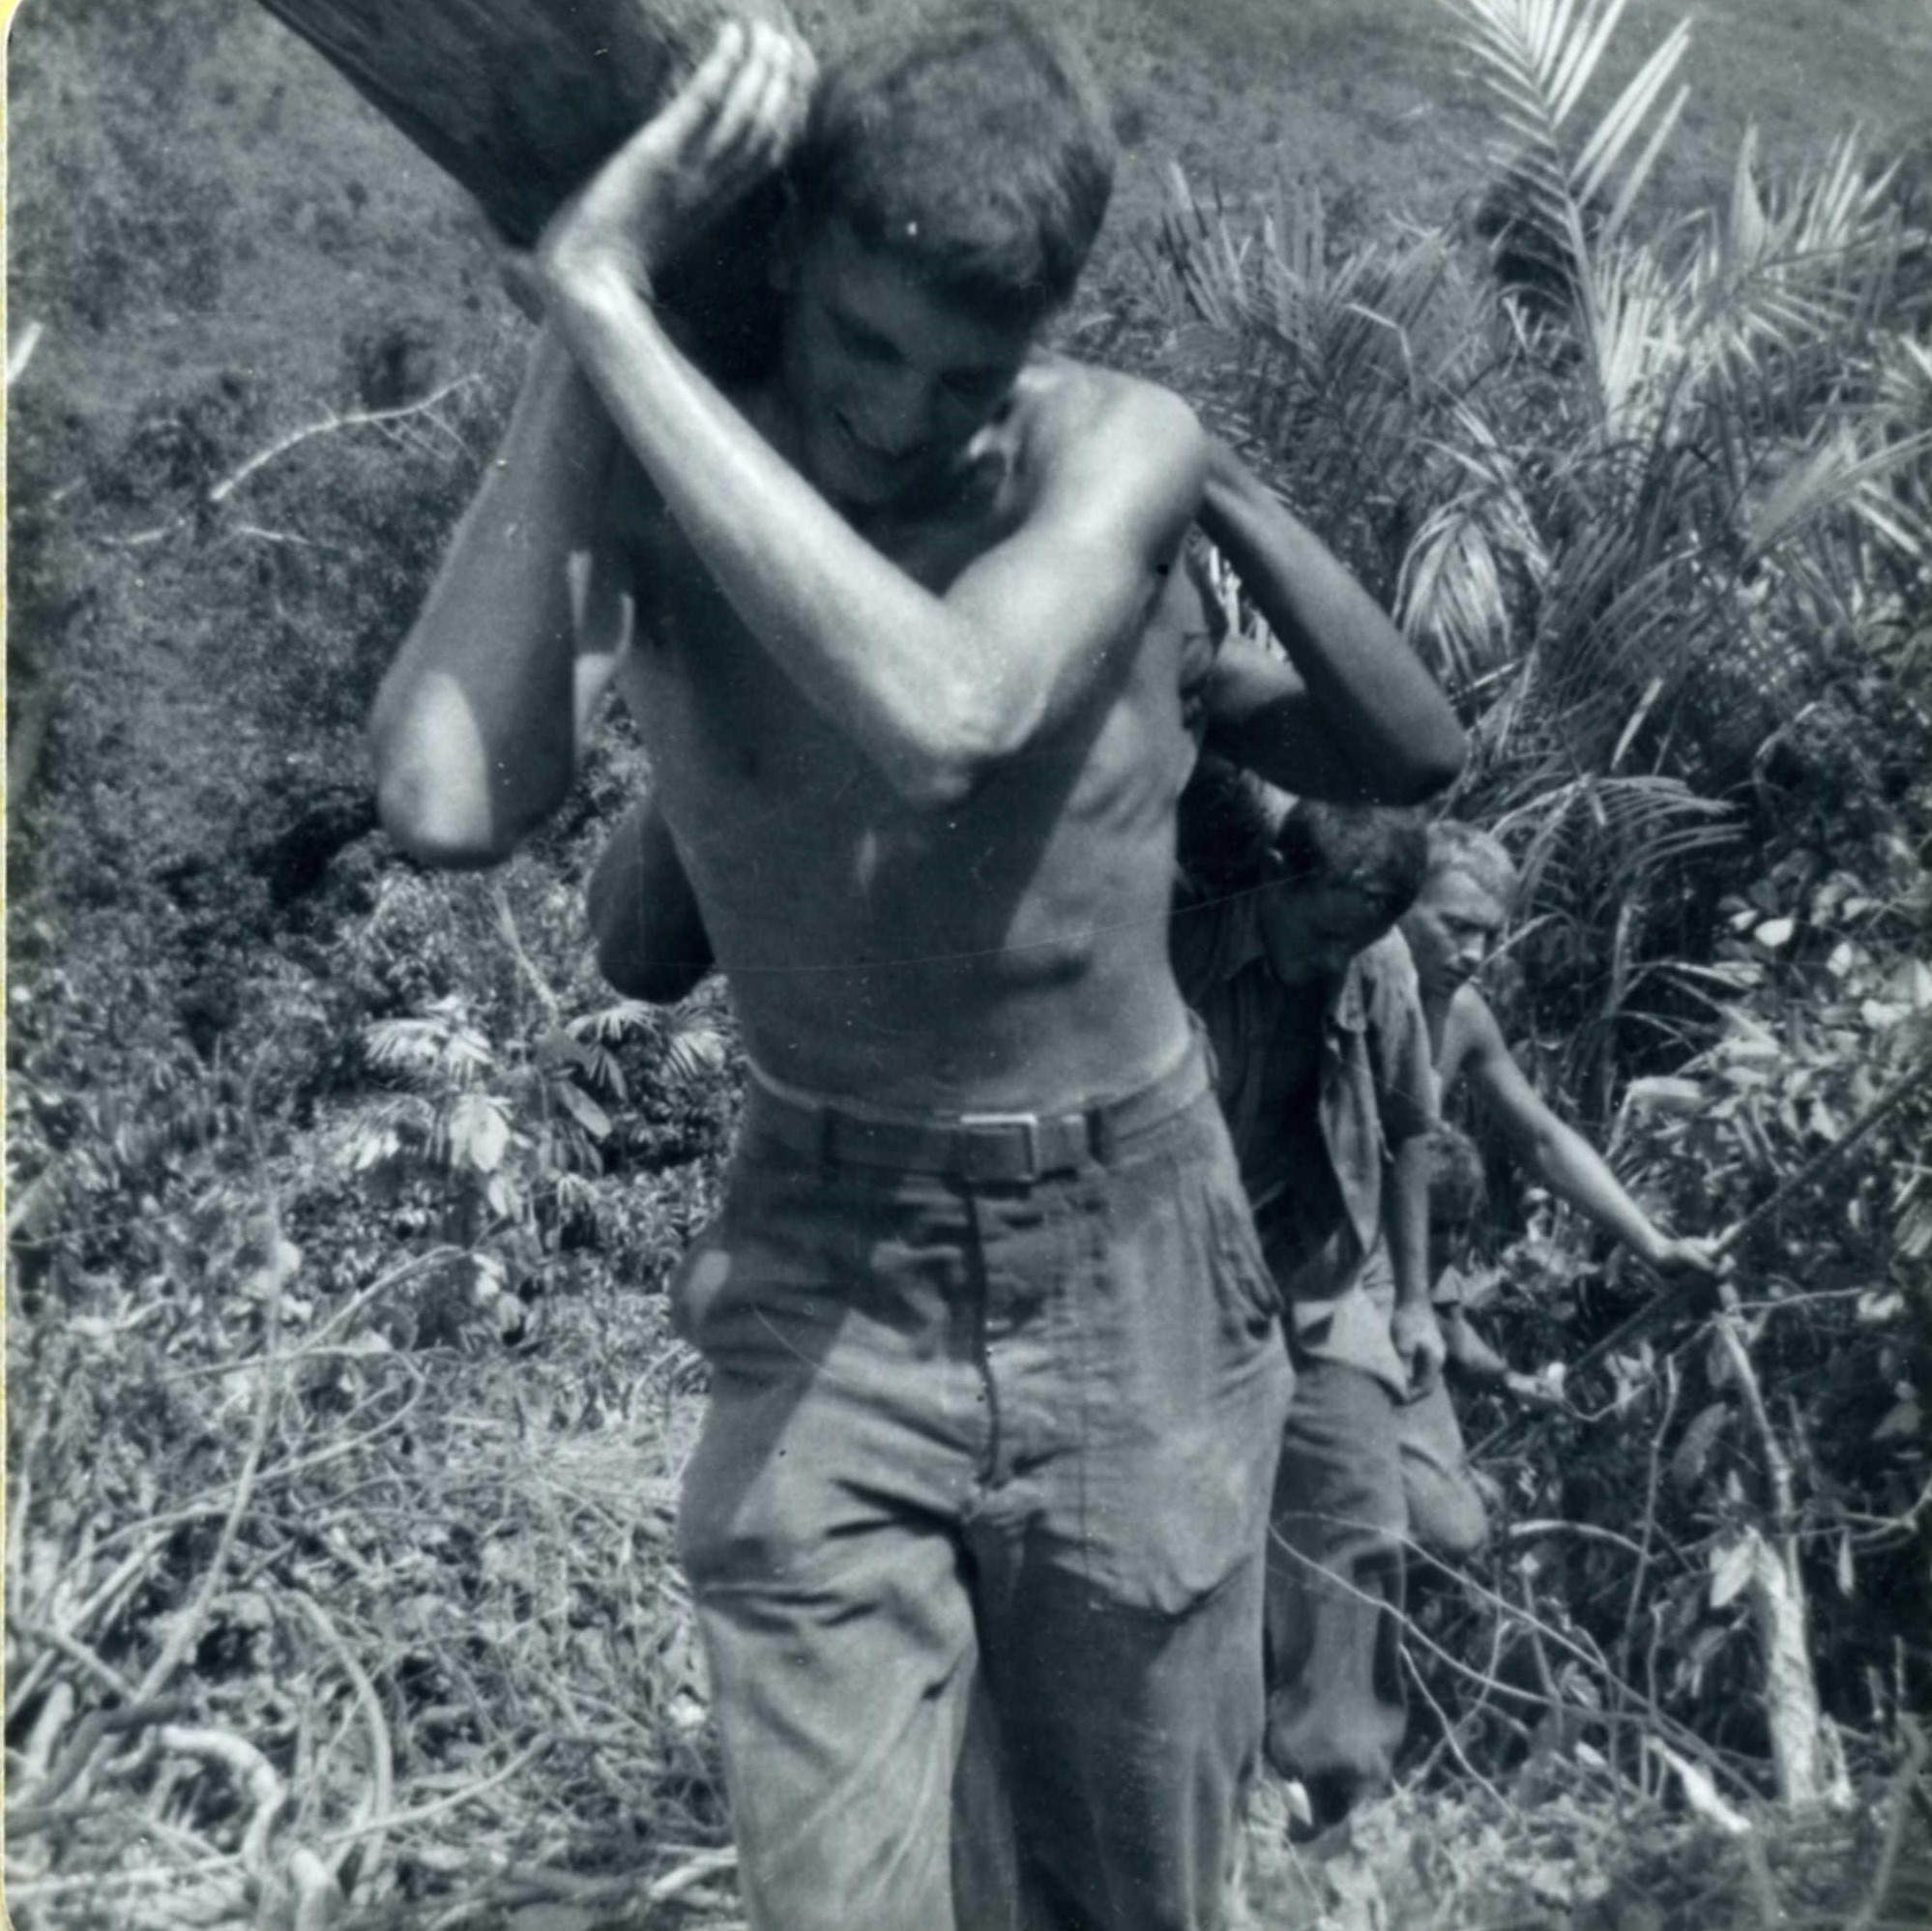 black and white photo of soldier carrying logs